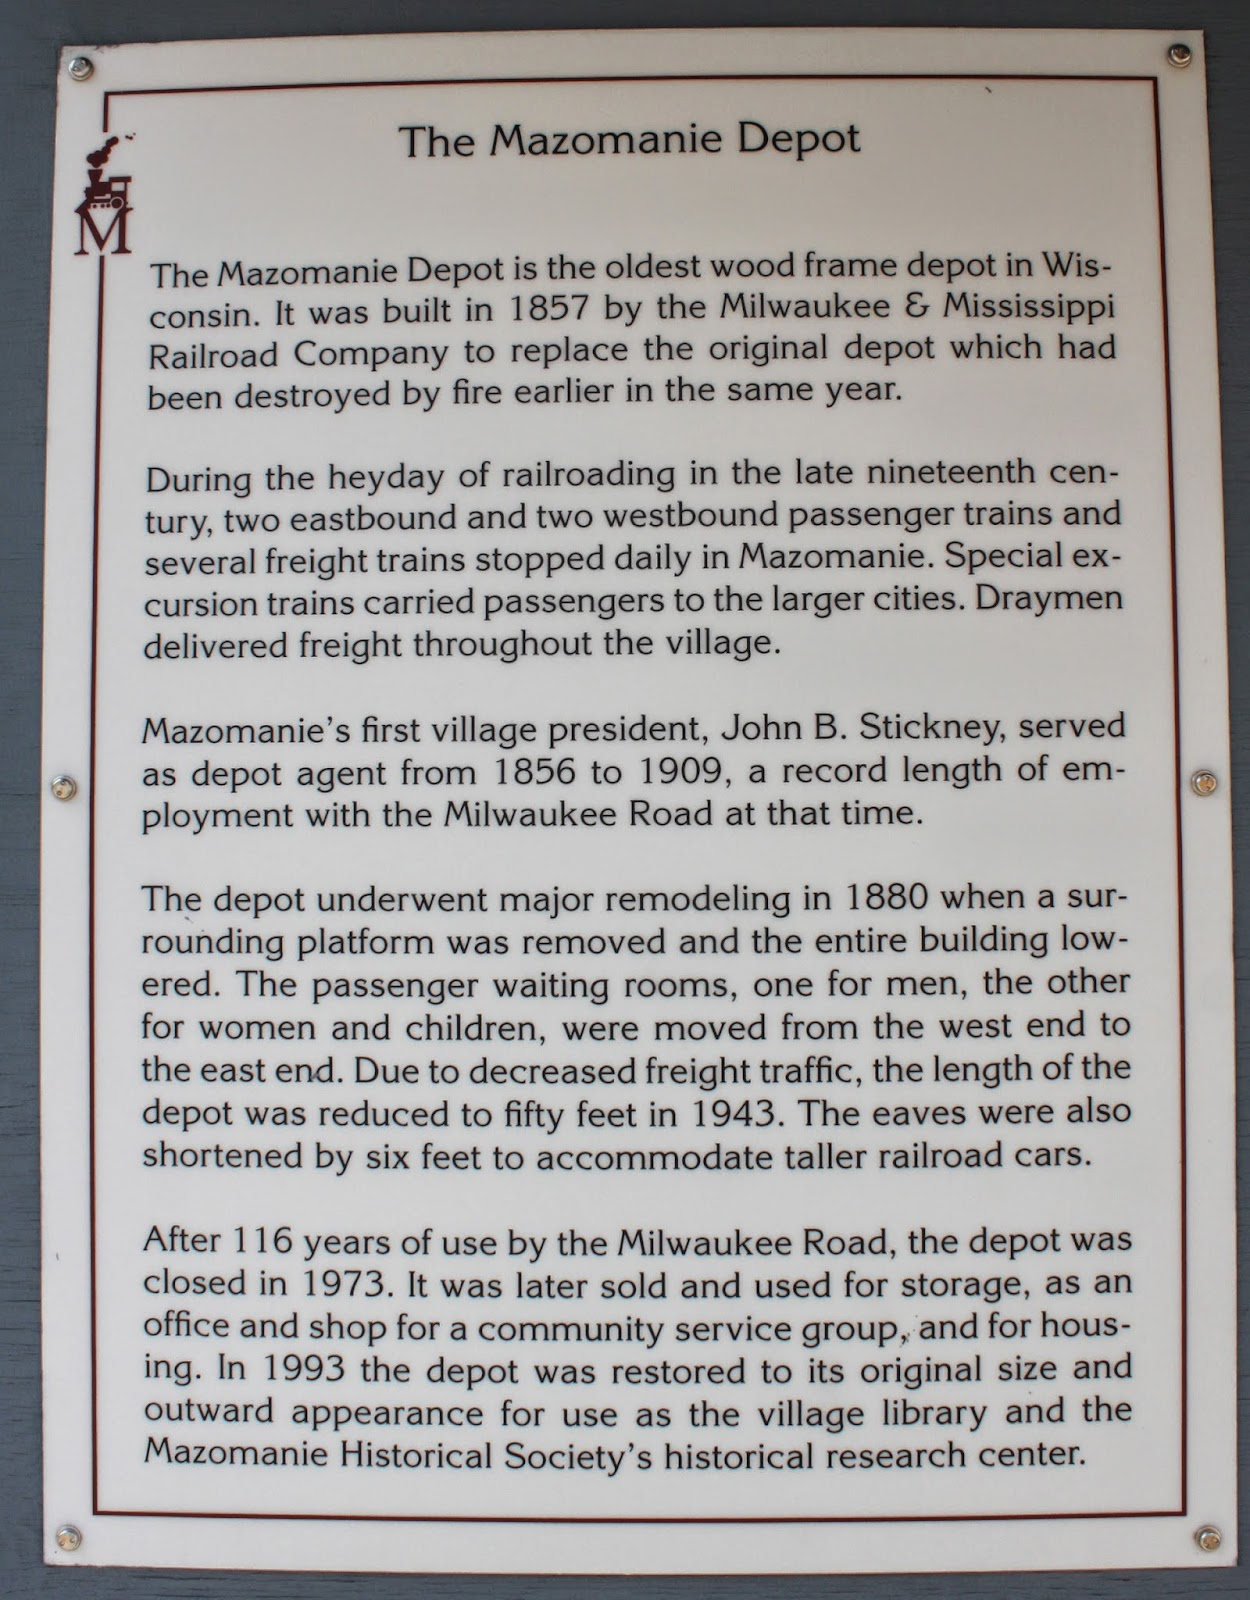 Wisconsin Historical Markers: The Mazomine Depot